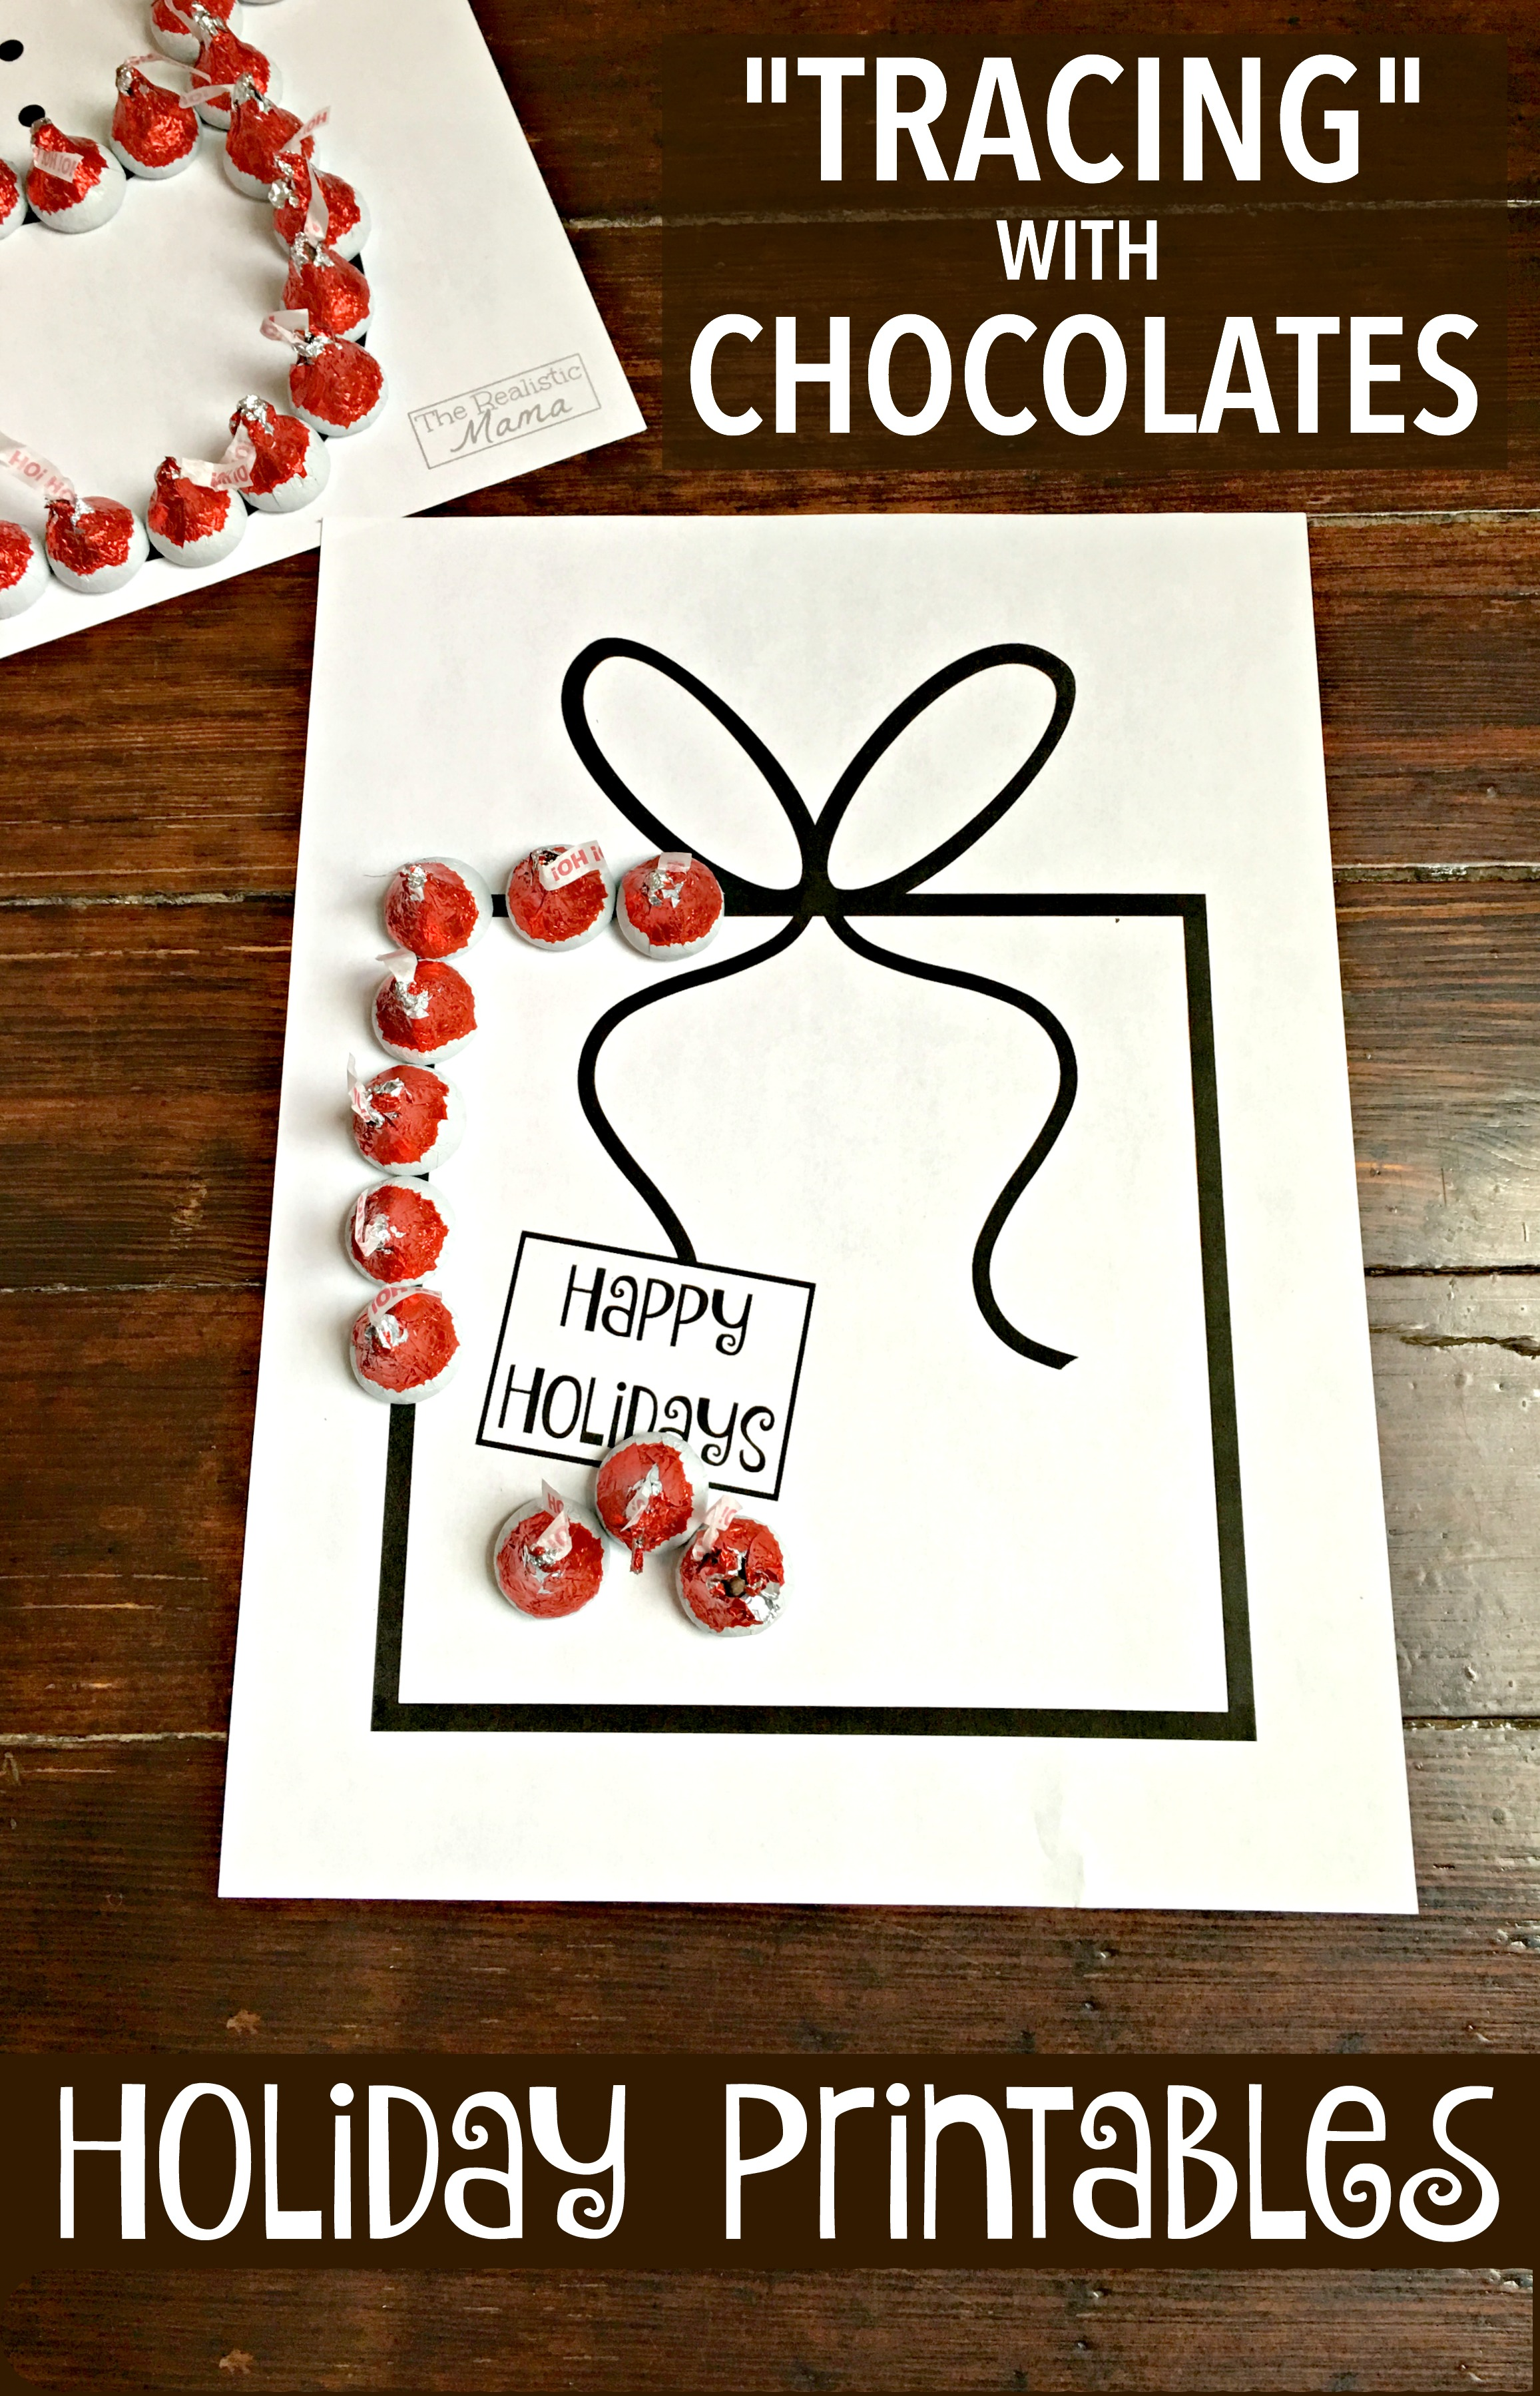 tracing with chocolate activity for kids free holiday printables - Kids Free Holiday